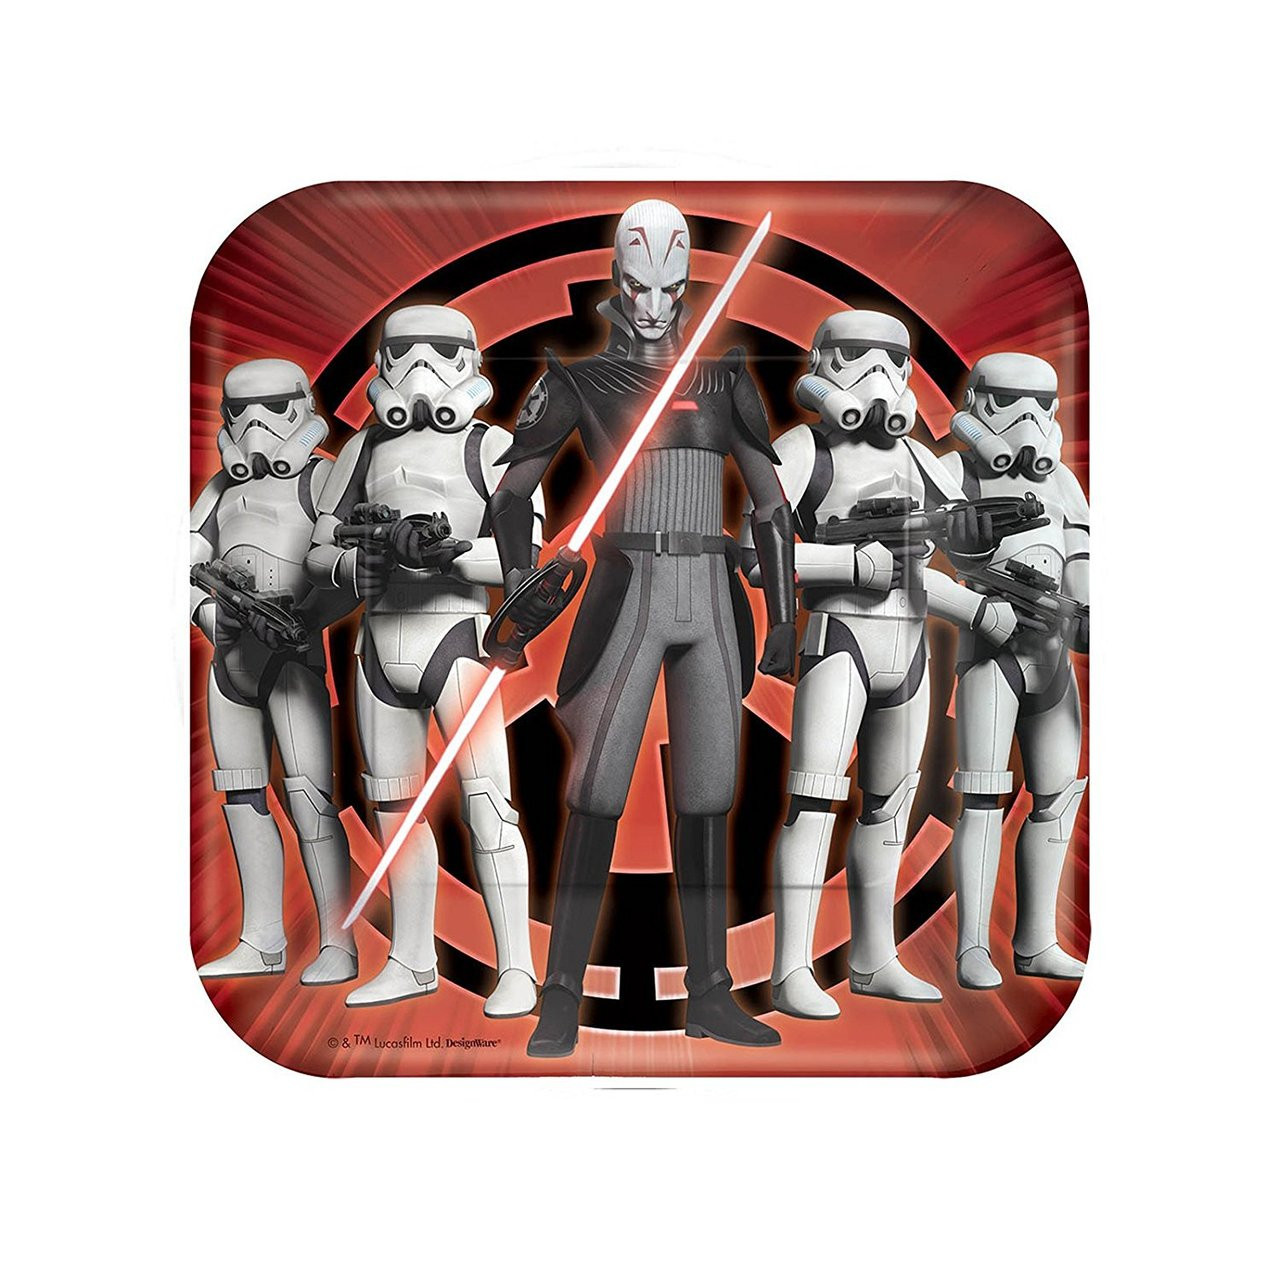 Star Wars Rebels Small 7 Inch Party Cake Dessert Plates